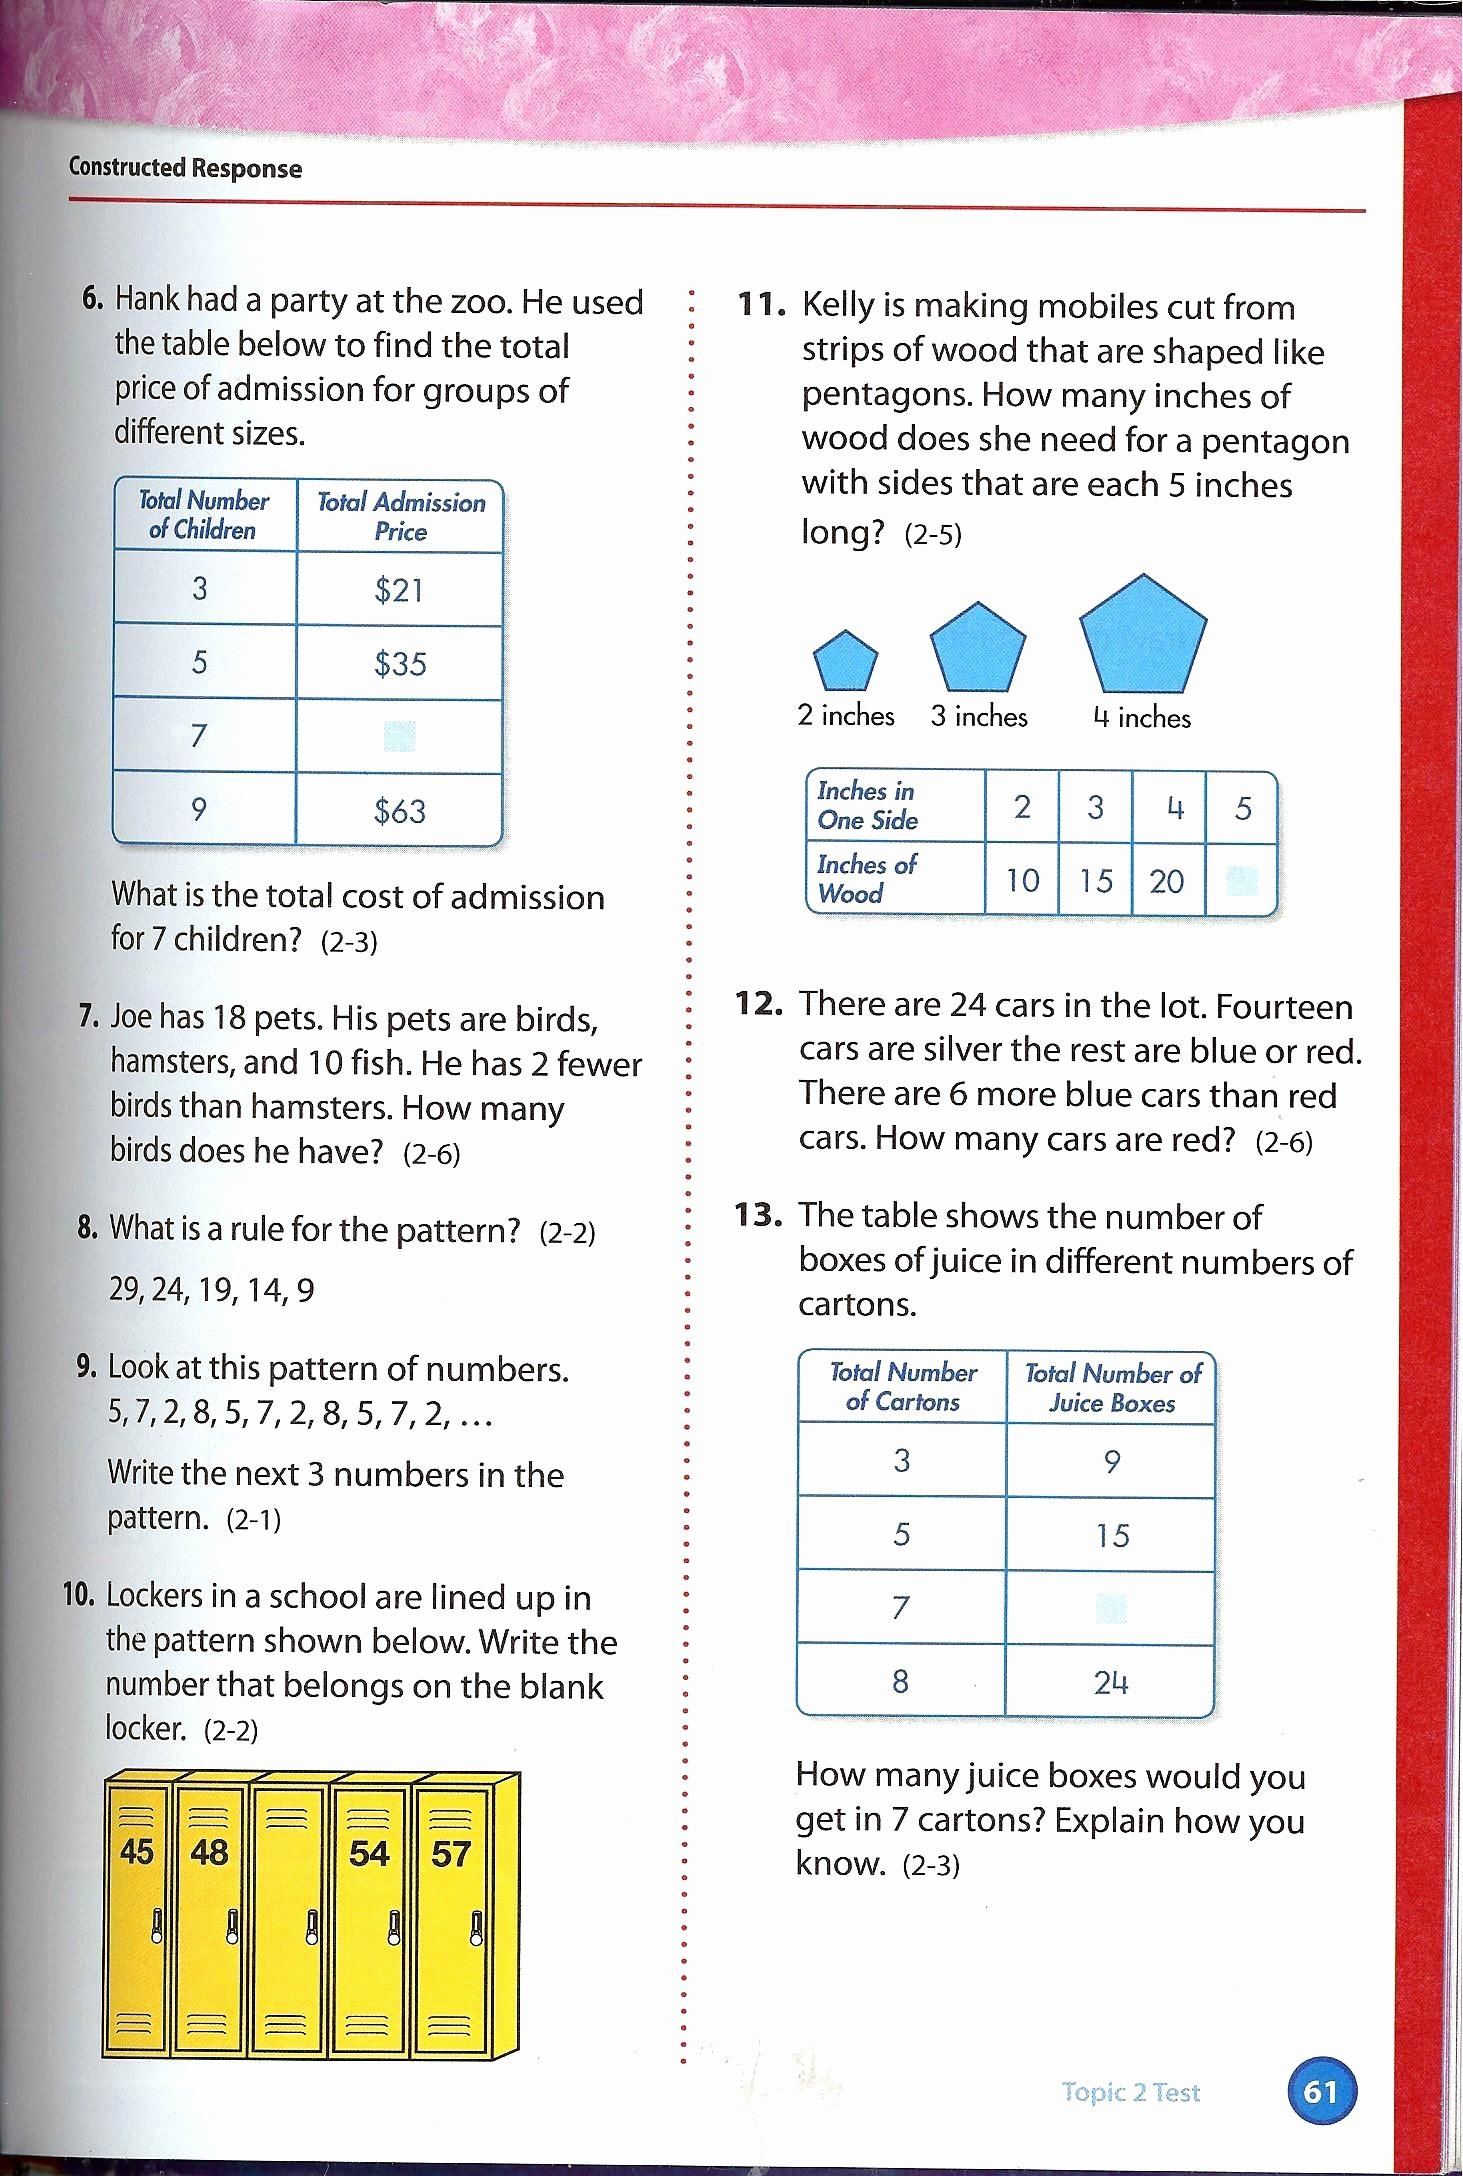 Envision Math Grade 3 Worksheets Fresh 8 Envision Math Workbook Grade 3 Printable In 2020